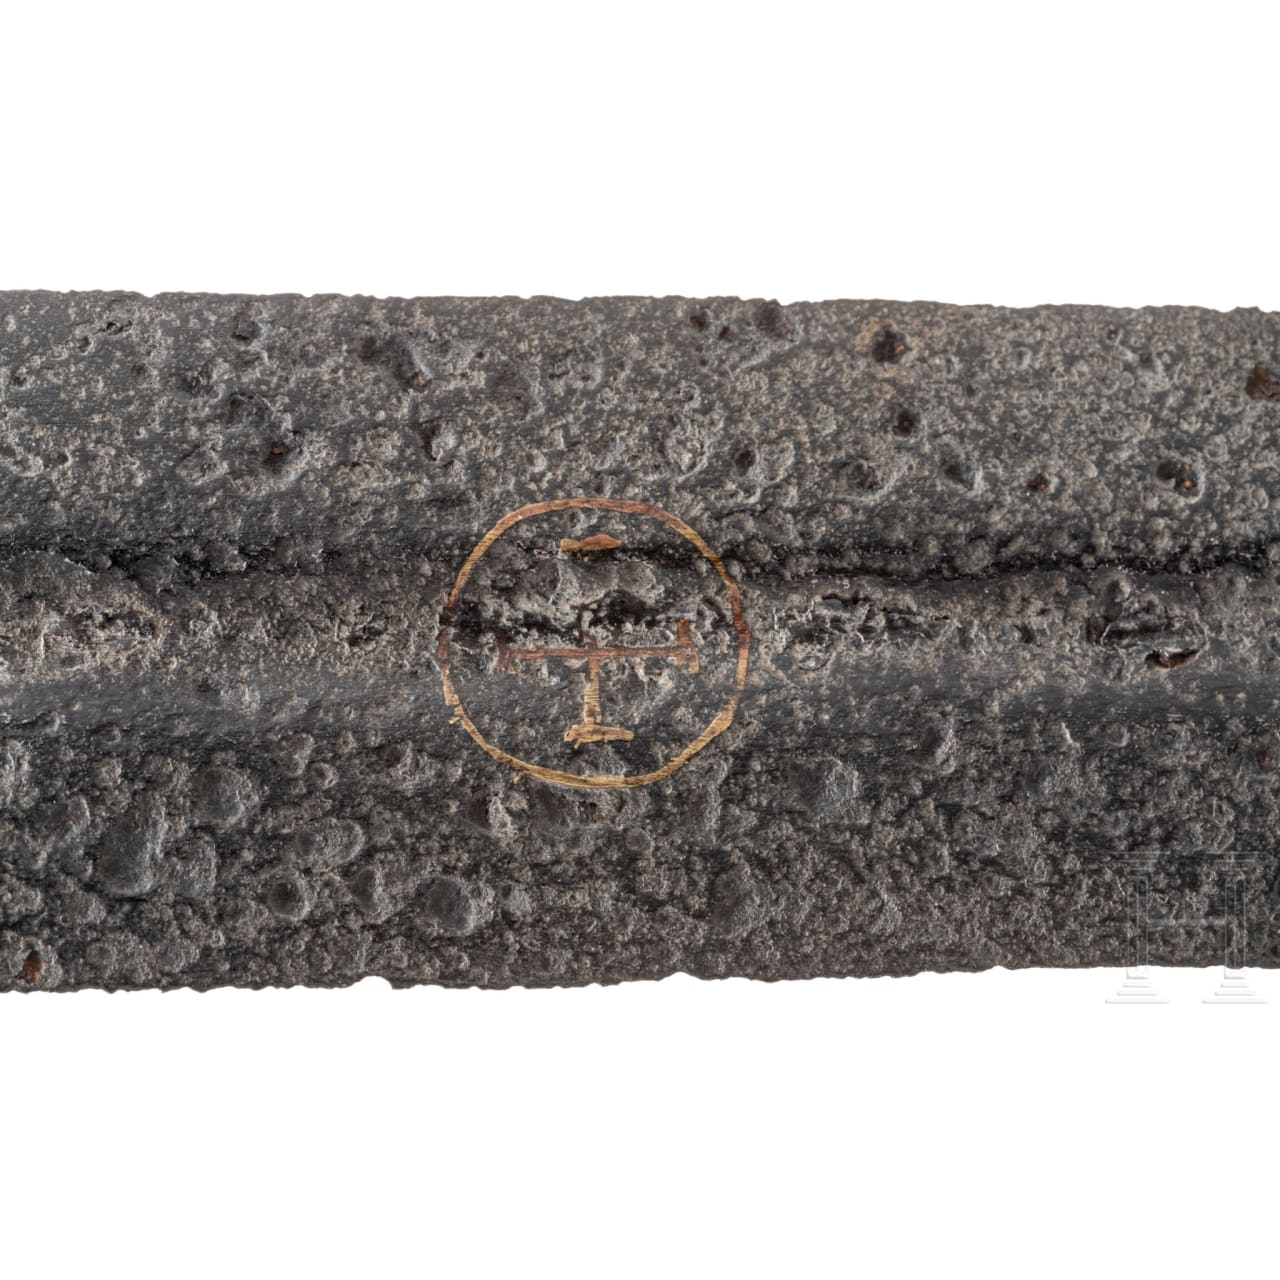 A German Gothic medieval sword with gold-inlaid blade, circa 1250